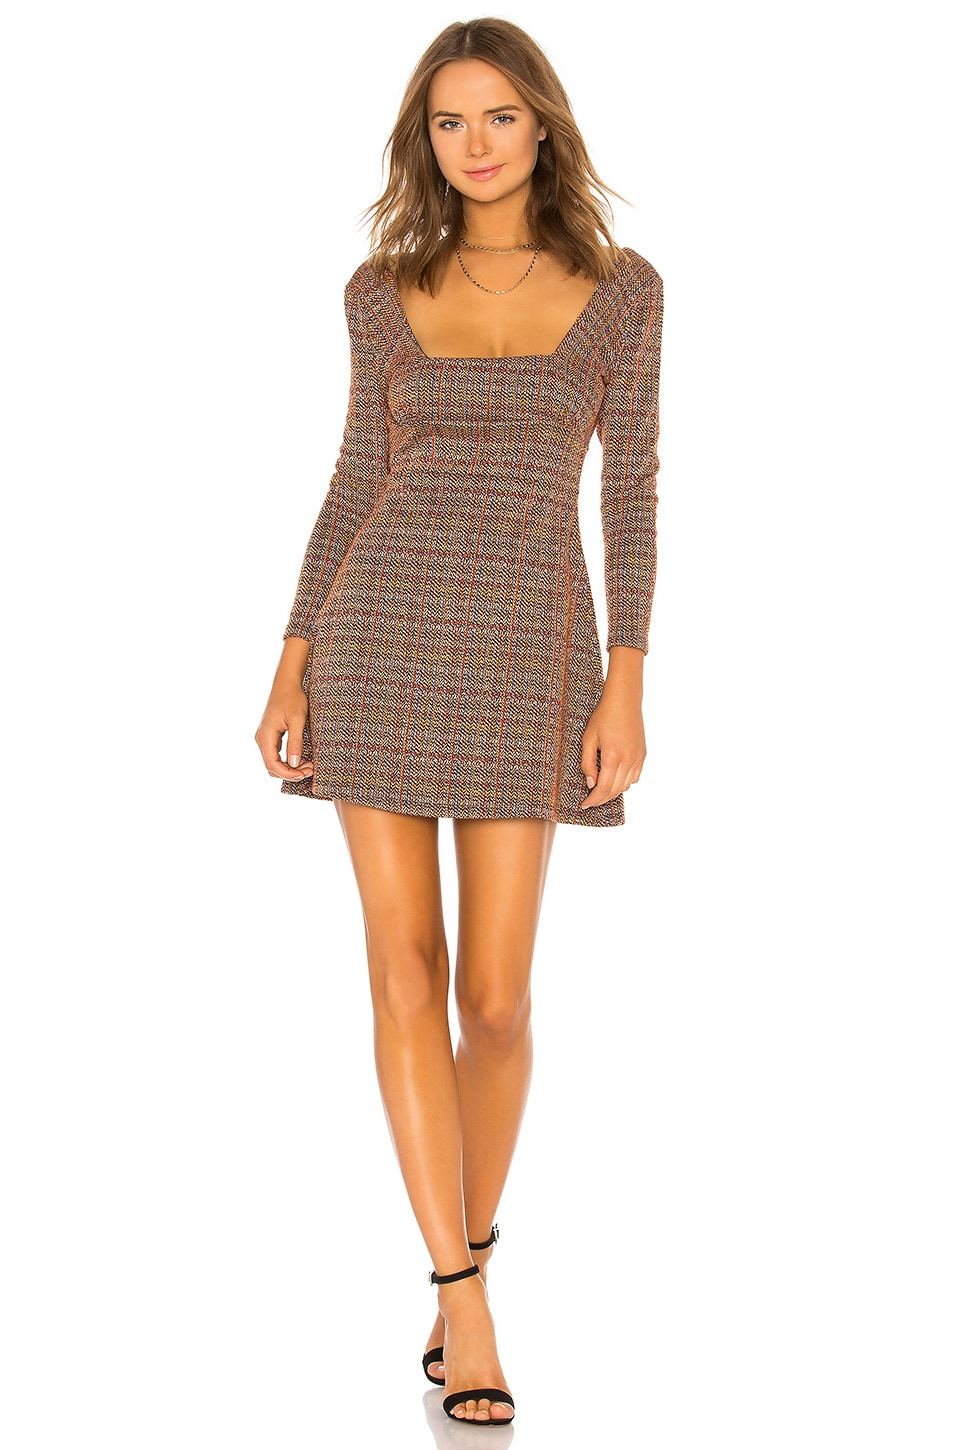 Uptown Girl Mini Dress